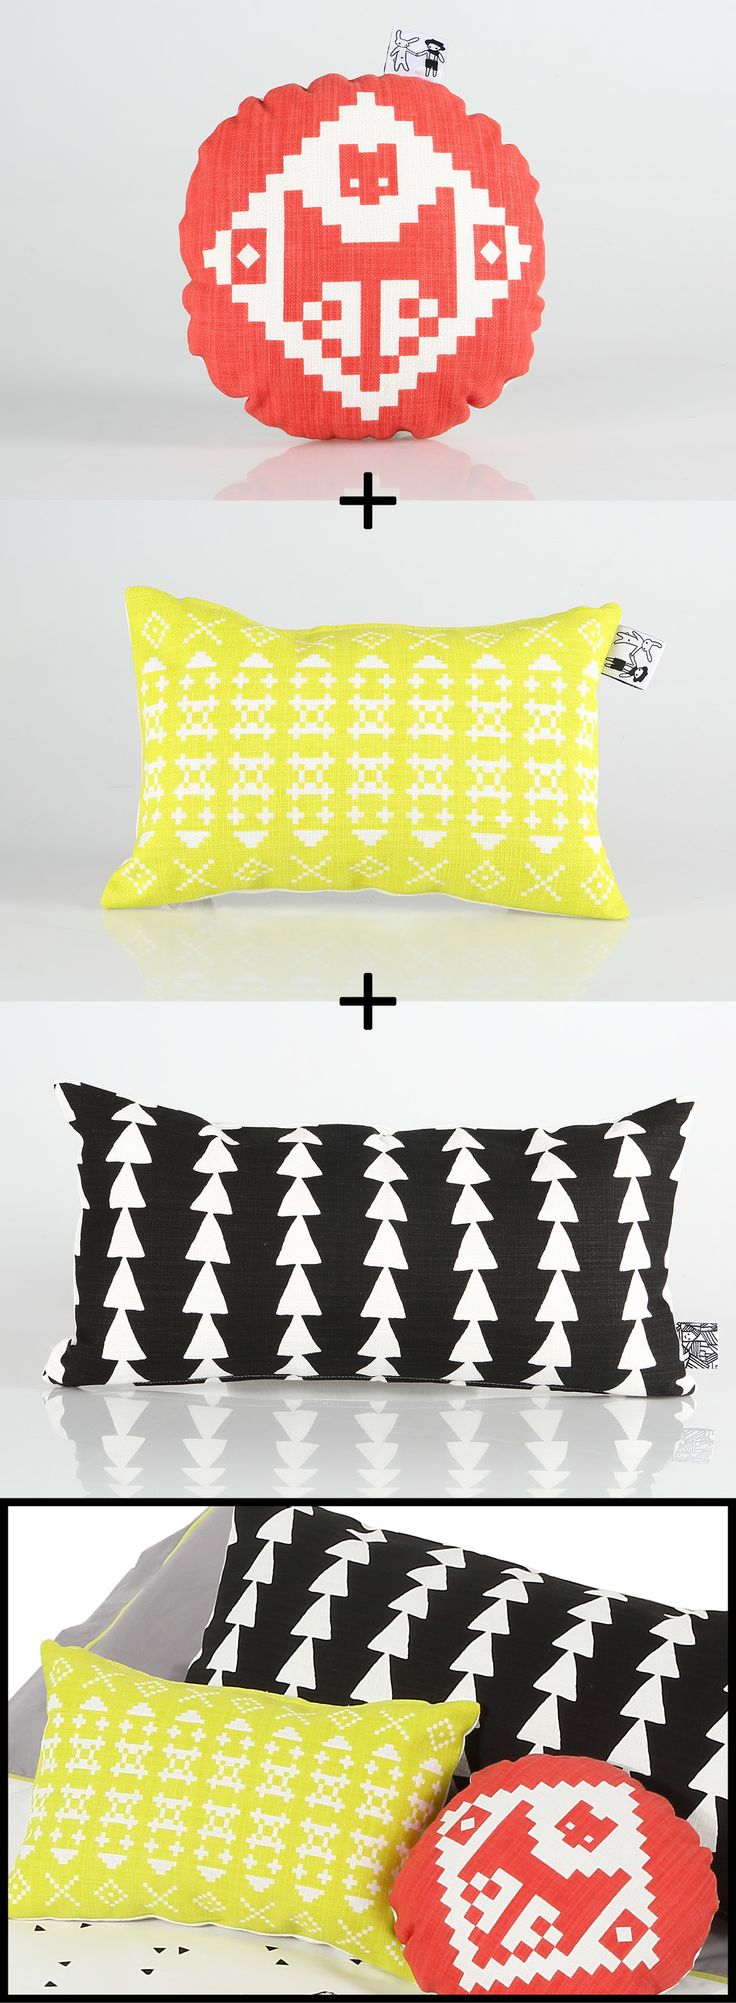 Super fun mini scatters! 100% cotton. This range goes perfectly with our Sleeping Fox bedding. Without inners/stuffing they're great little bags.  Email us at info@bunnyandclyde.co.za to order.